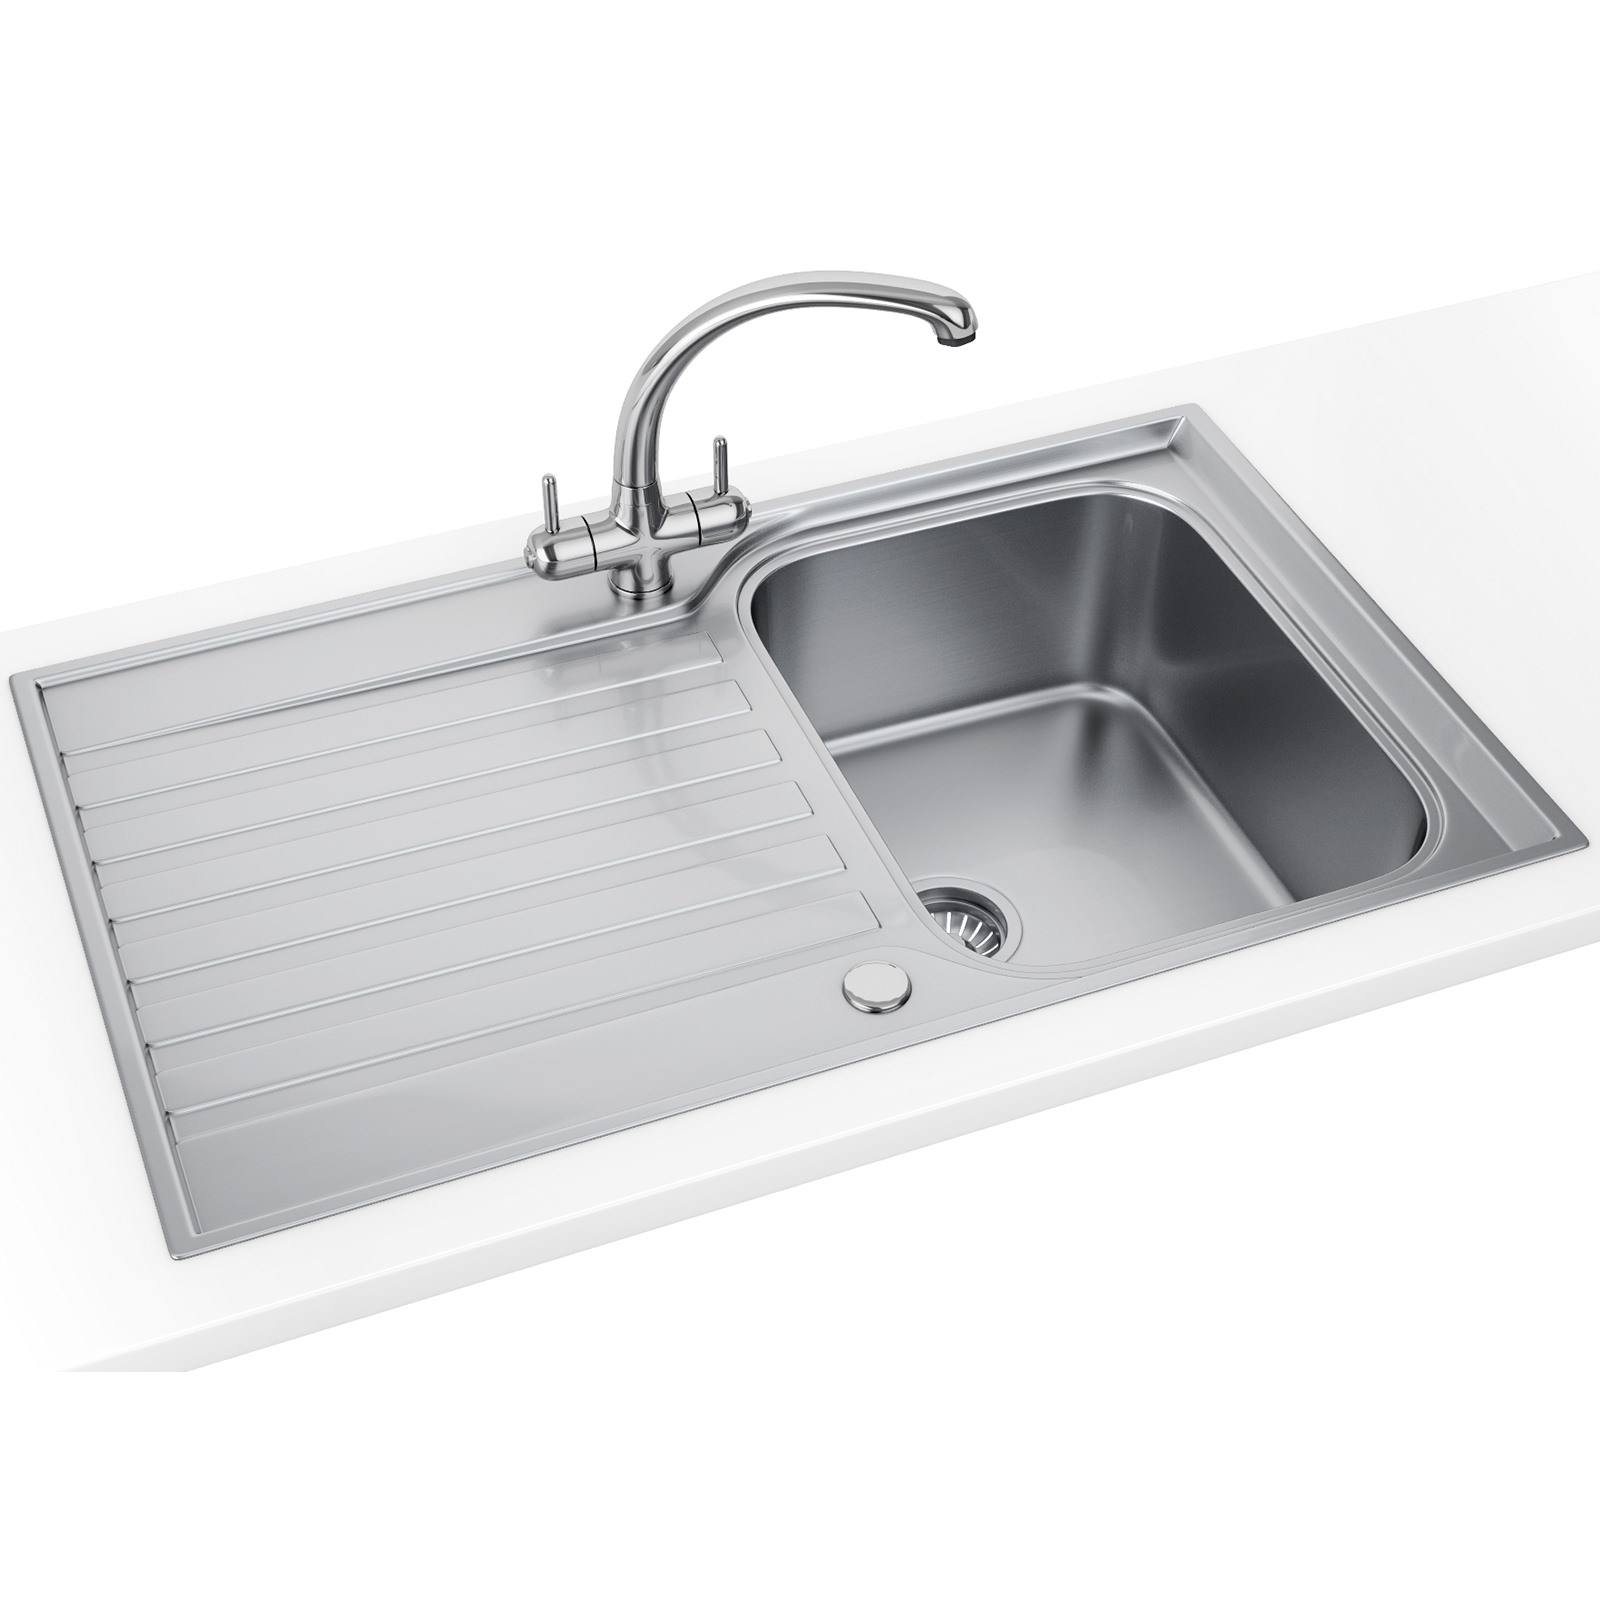 Sink bowl bathroom - Franke Ascona Asx 611 860 Stainless Steel 1 0 Bowl Inset